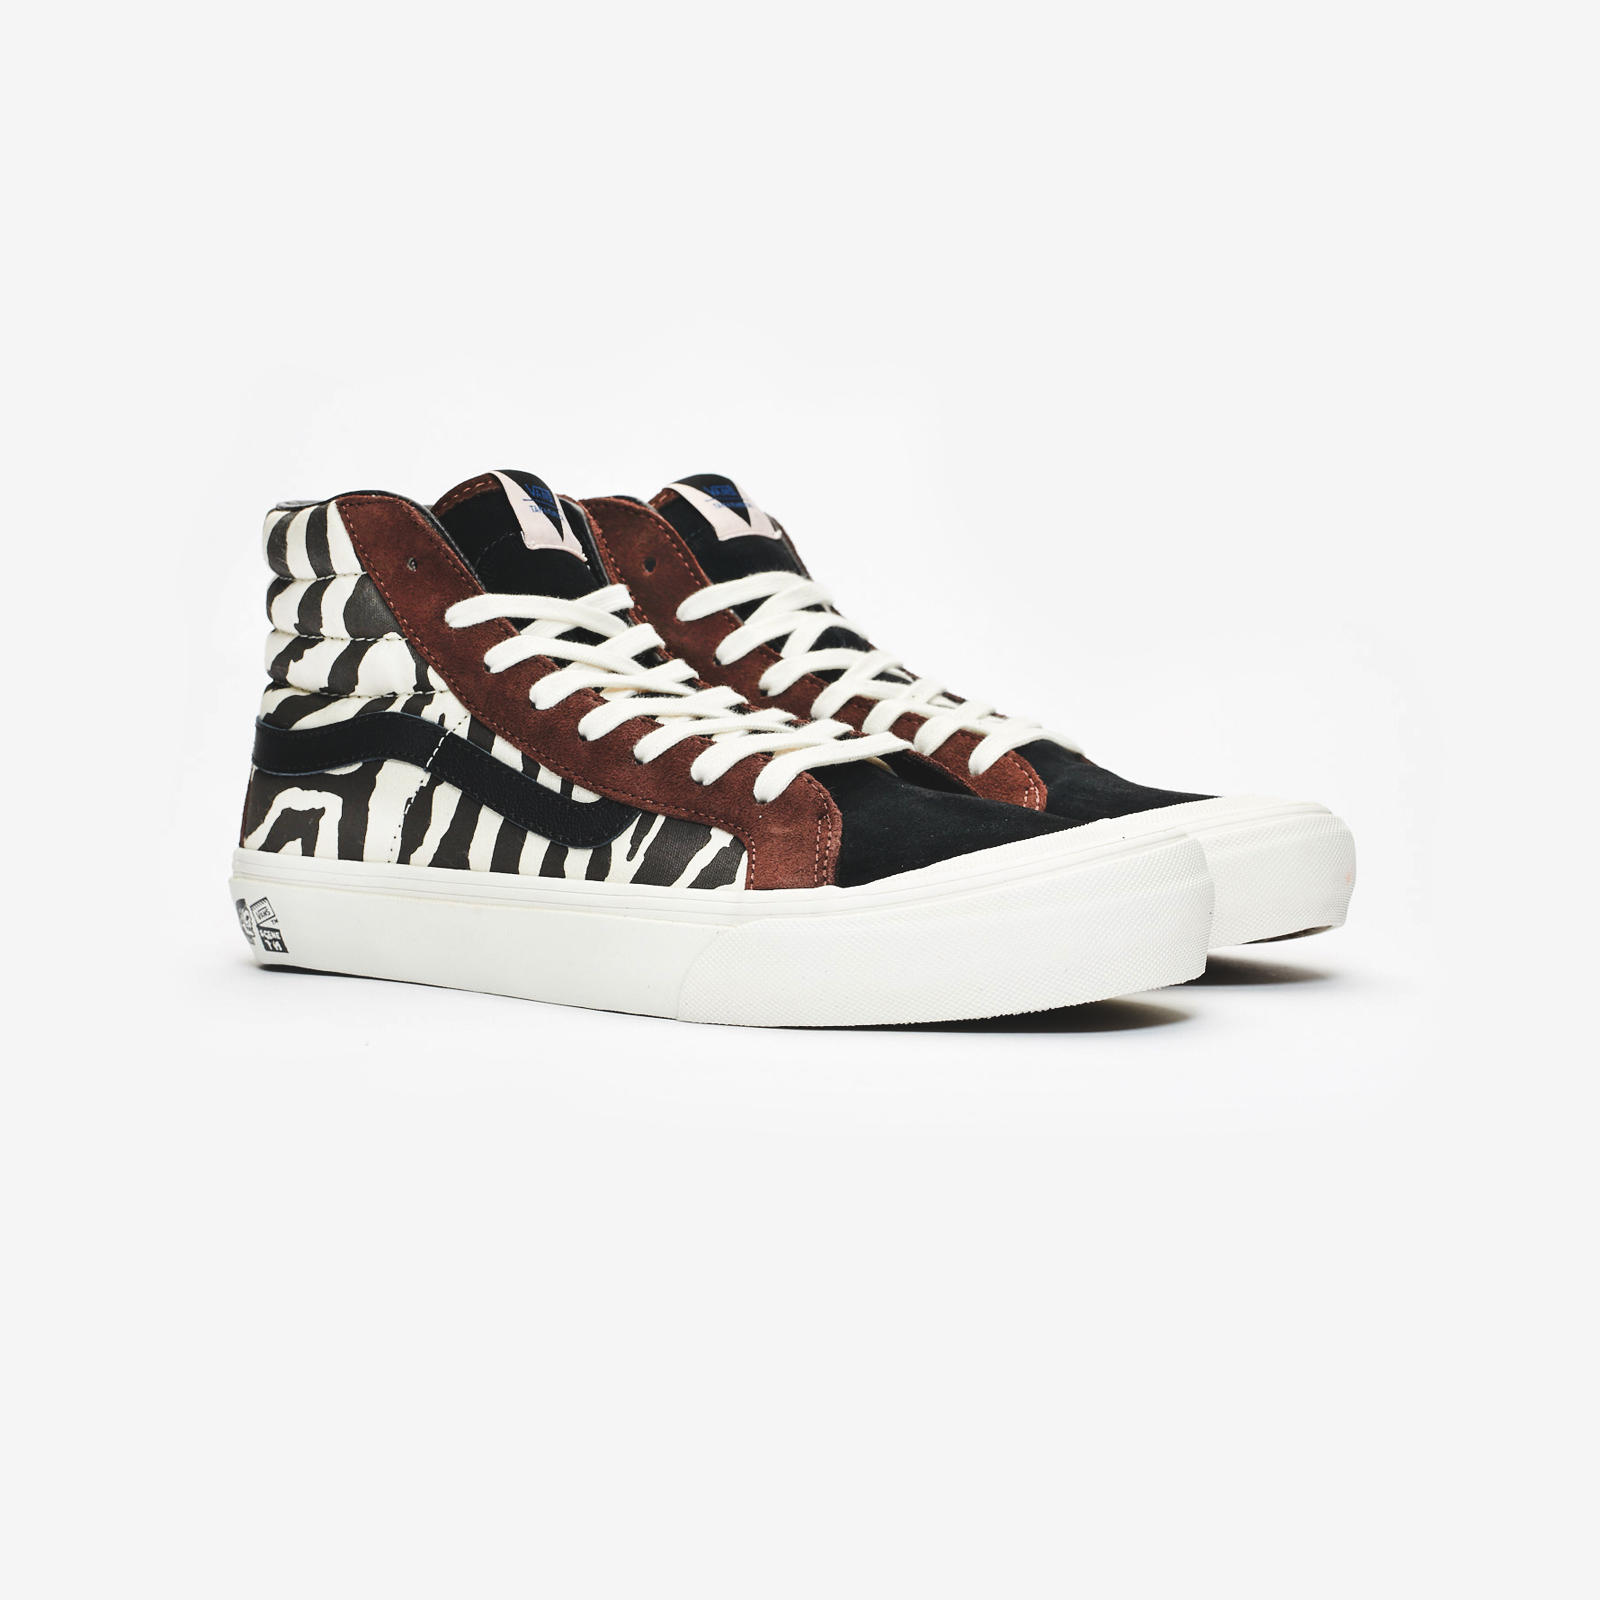 533e783ed3d202 Vans TH Style 138 LX - Vn0a3zcourf - Sneakersnstuff